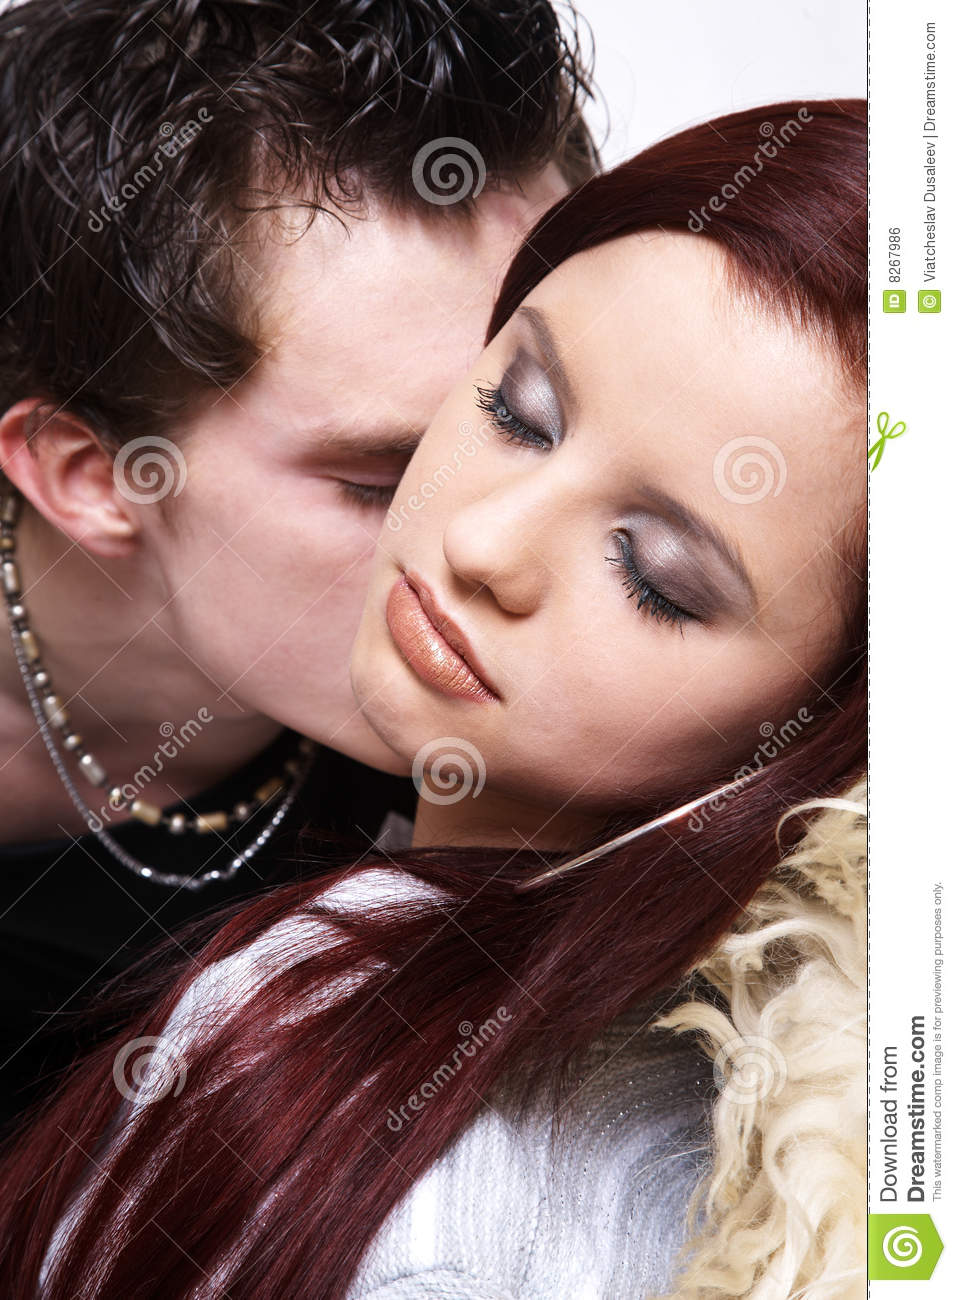 Pretty Adult Kissing Couple Royalty Free Stock Image - Image 8267986-2342